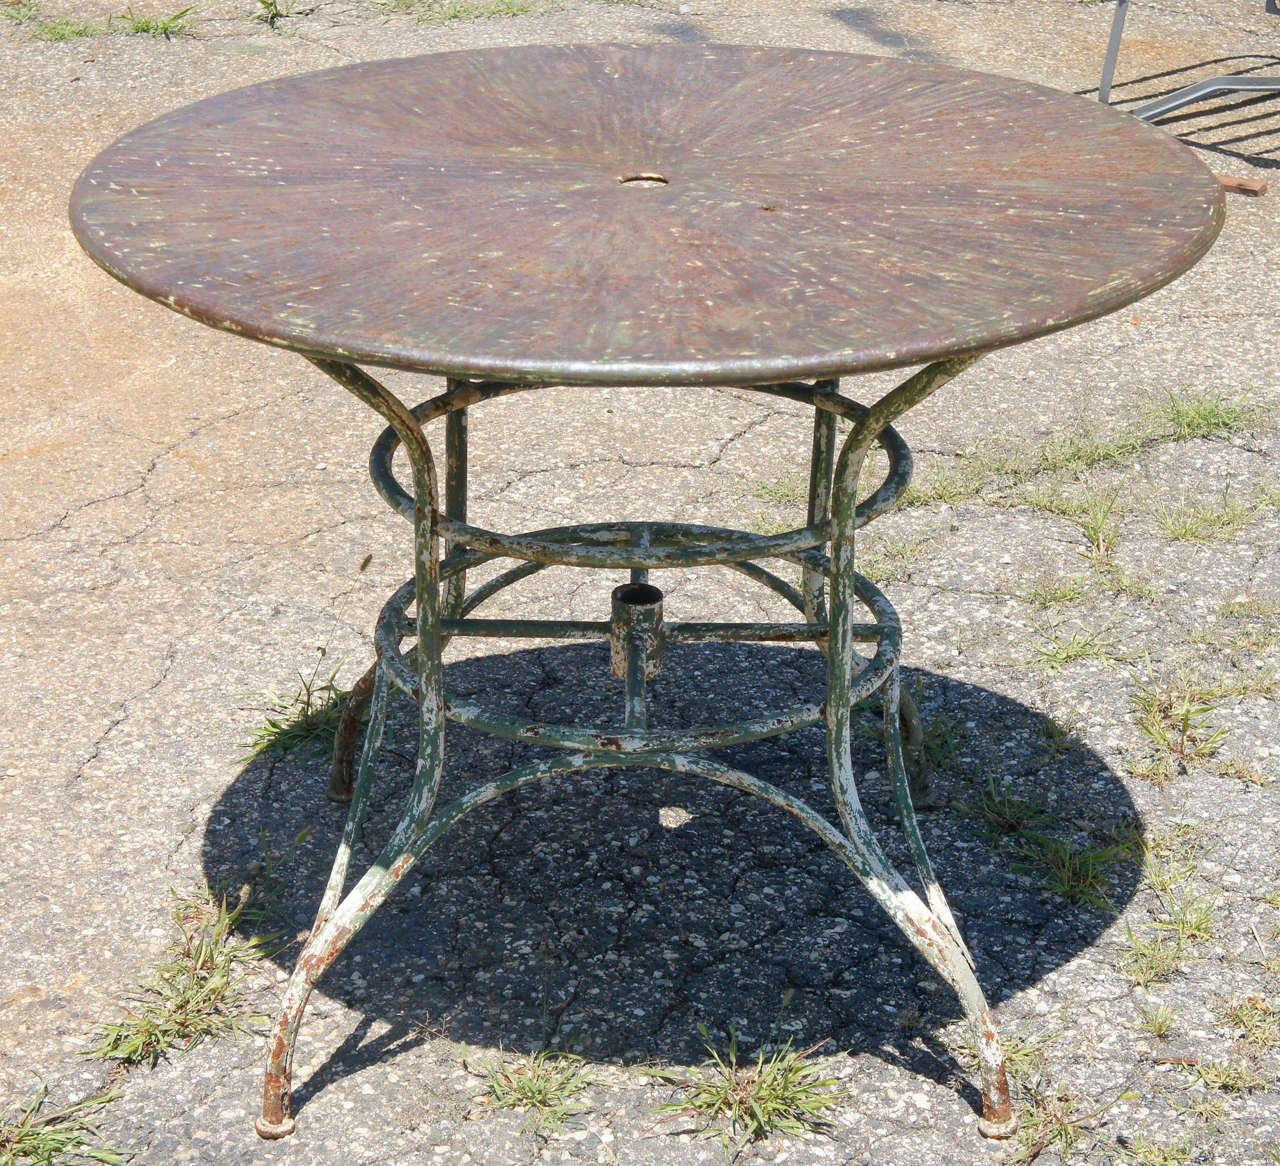 An Unique Indoor Or Outdoor Round Metal Garden Umbrella Table With Surface  Of Colors Splayed From